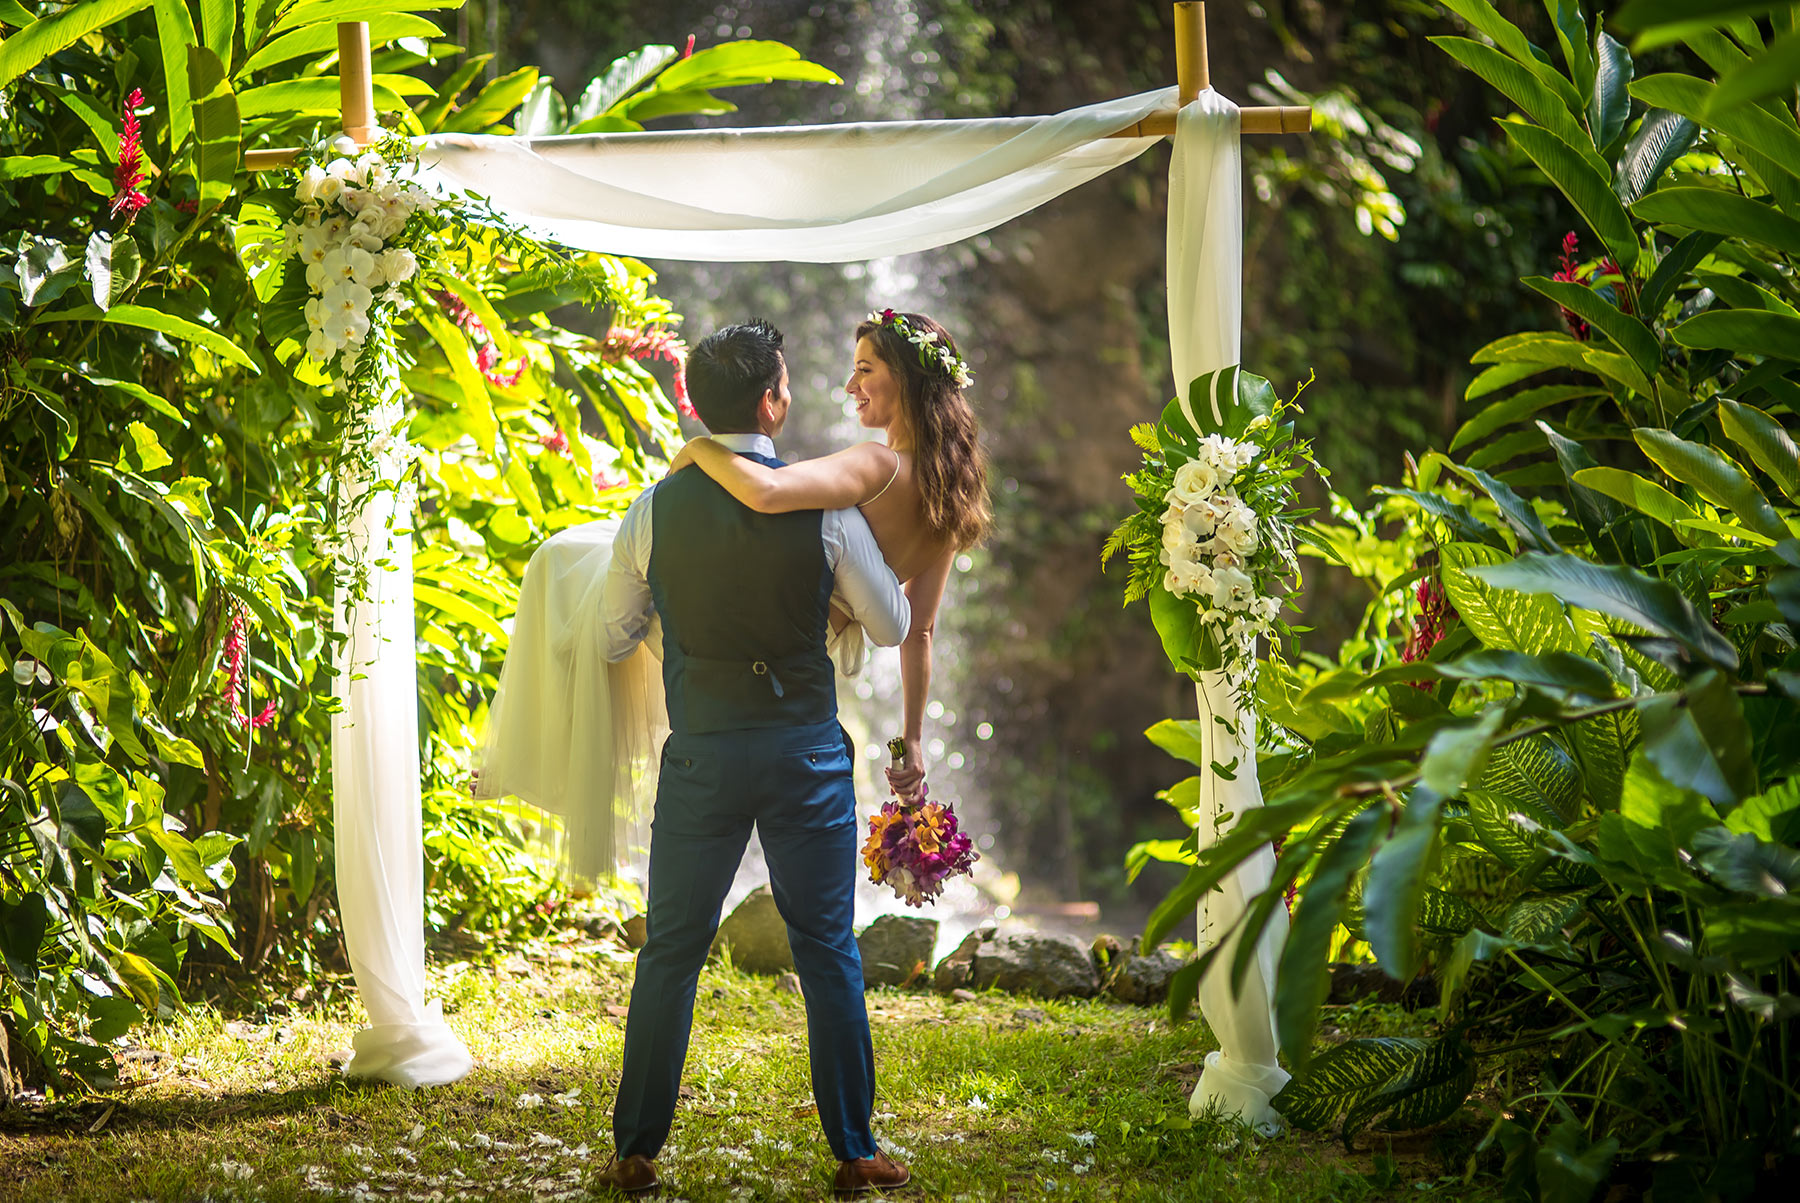 The groom majestically holds his bride in the Hawaiian flower lei arch - this is the wedding of her dreams.